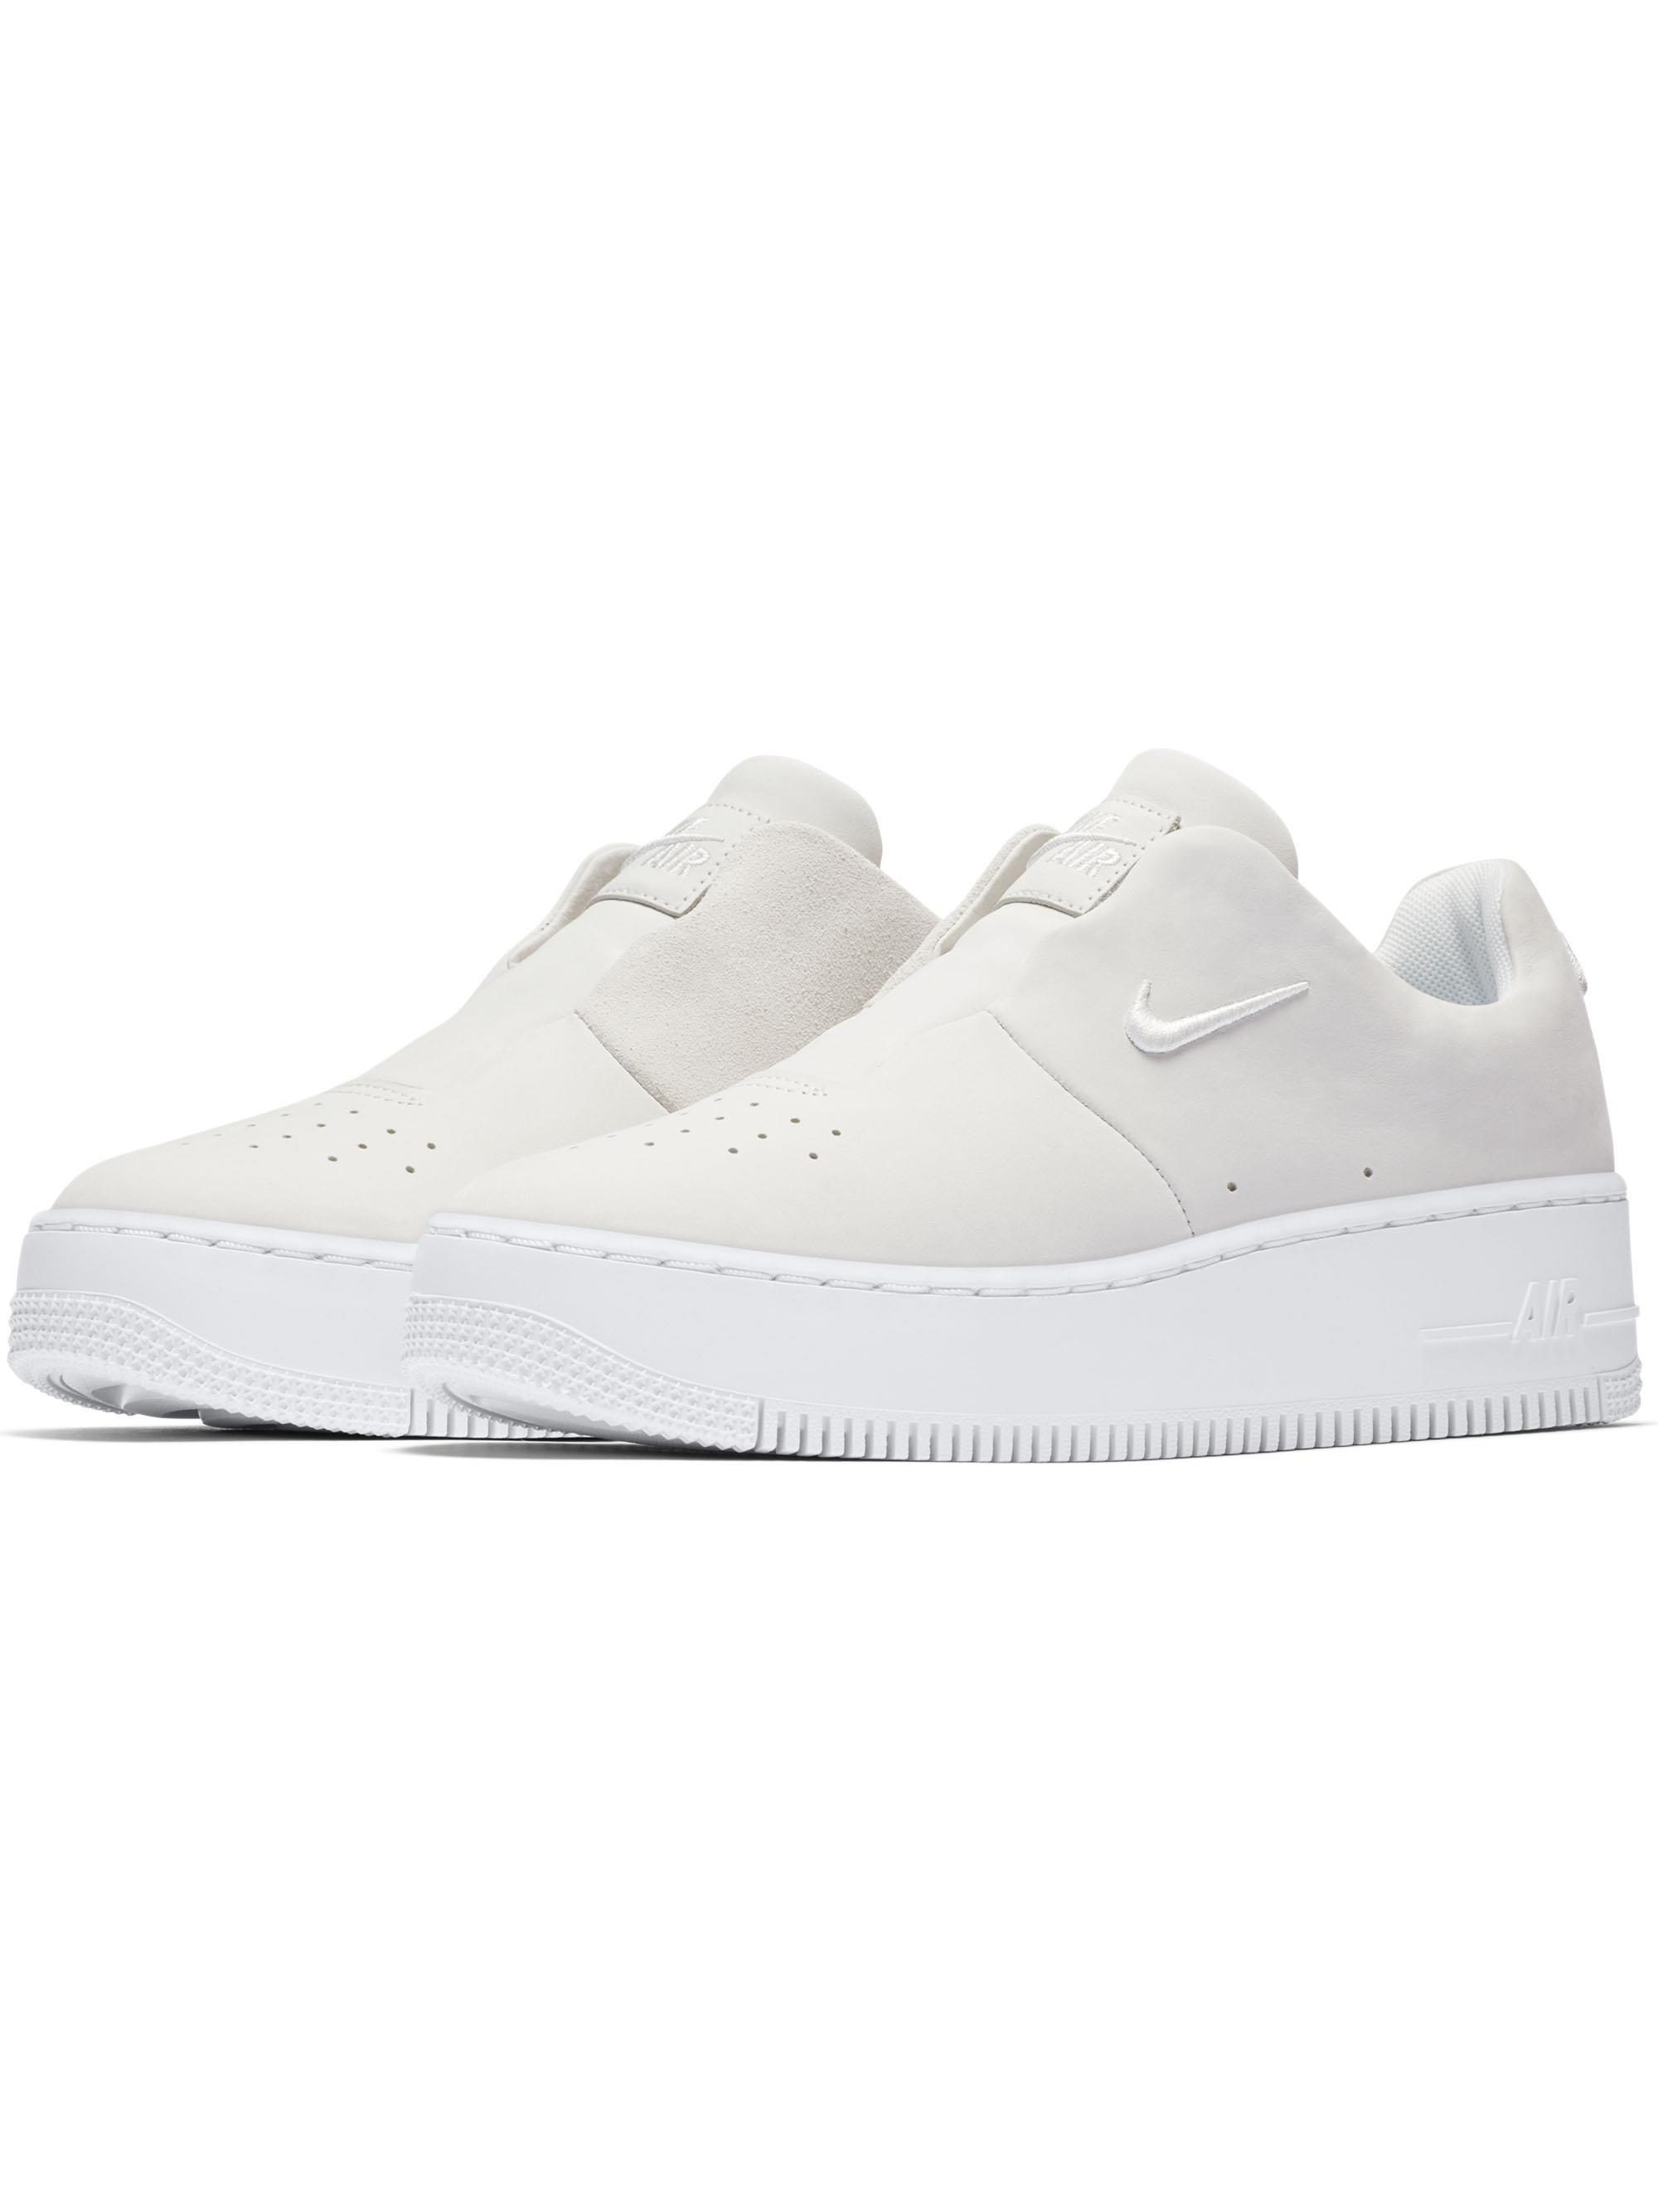 9c9d6e2f890 Nike Sneakers Air Force 1 Sage Xx in White - Lyst